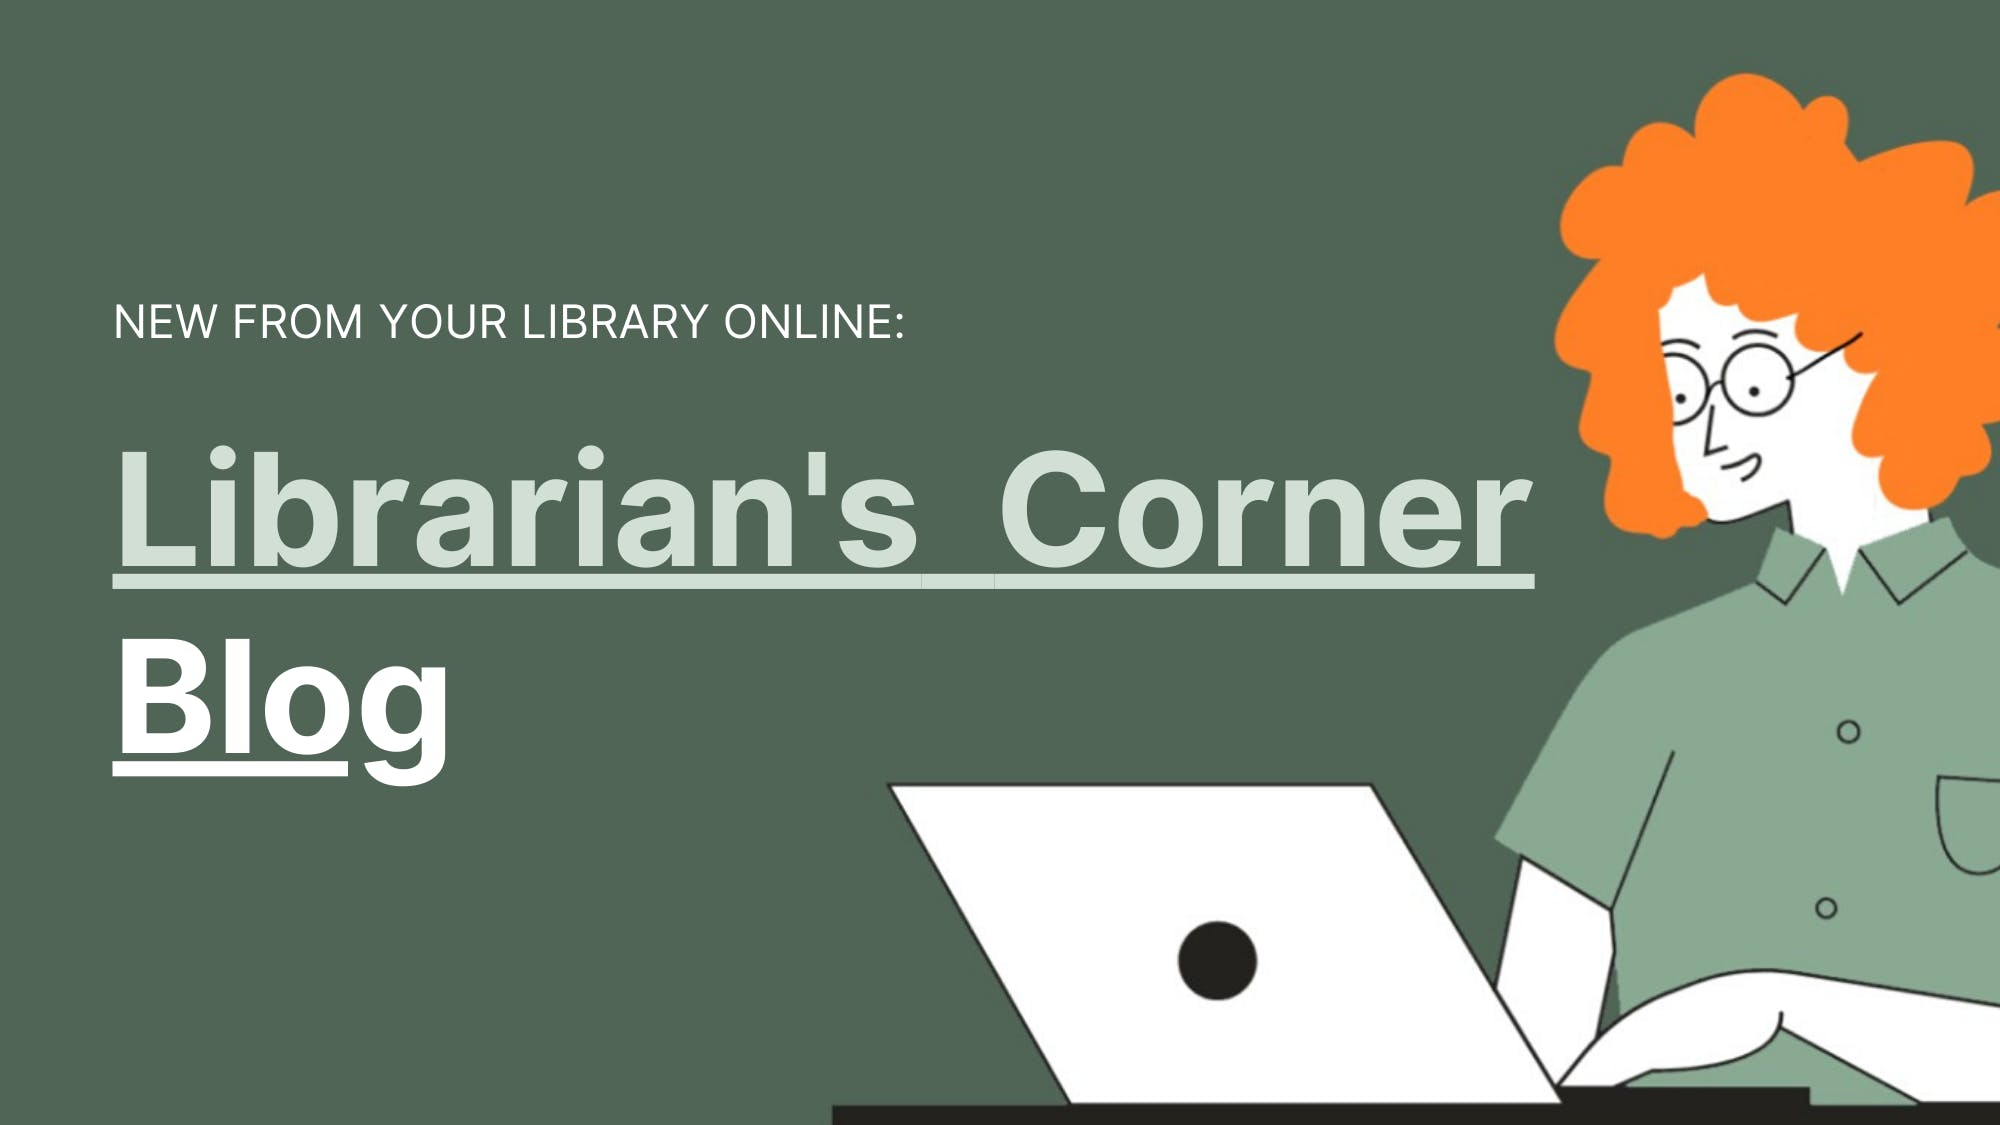 More Online Content from Your Library